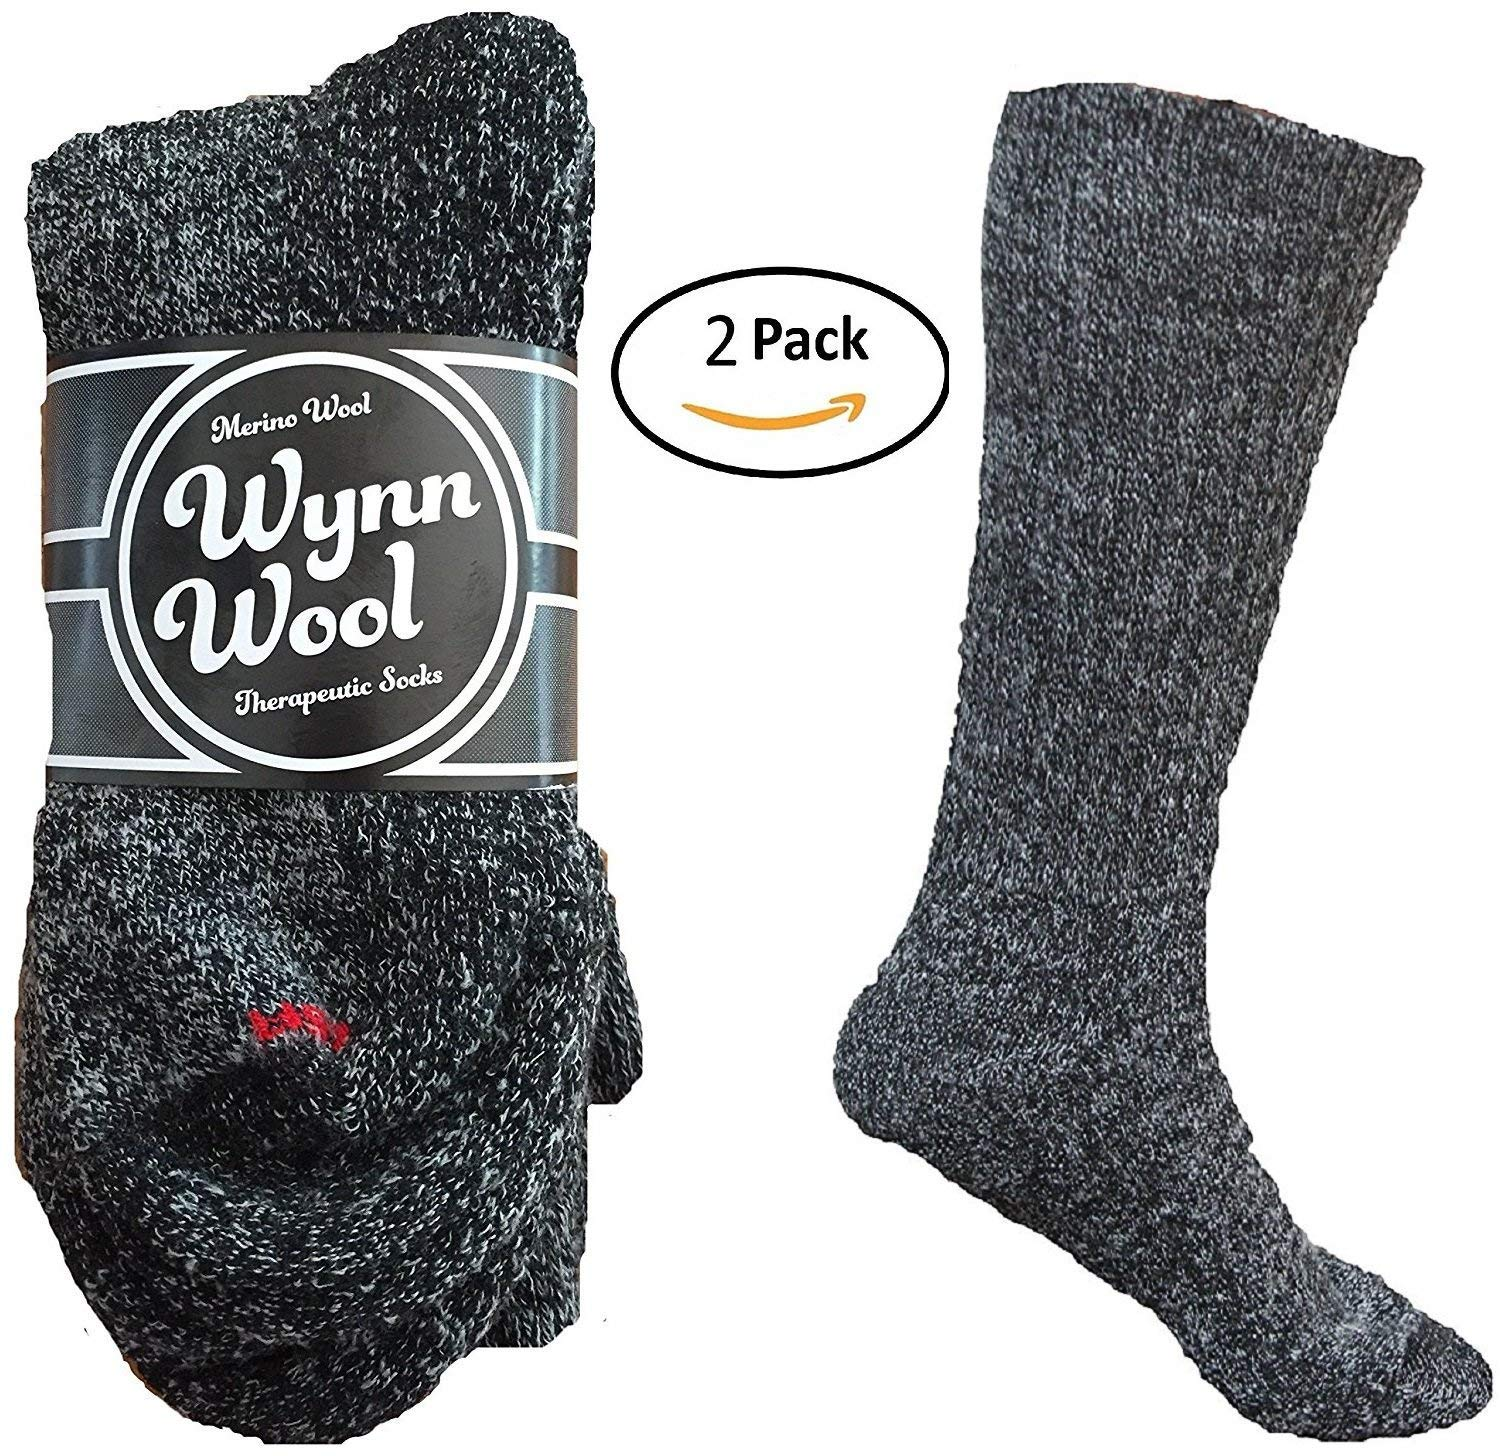 Diabetic Merino Wool Loose Fitting Socks 2 Pair Large Black by Wynn Wool